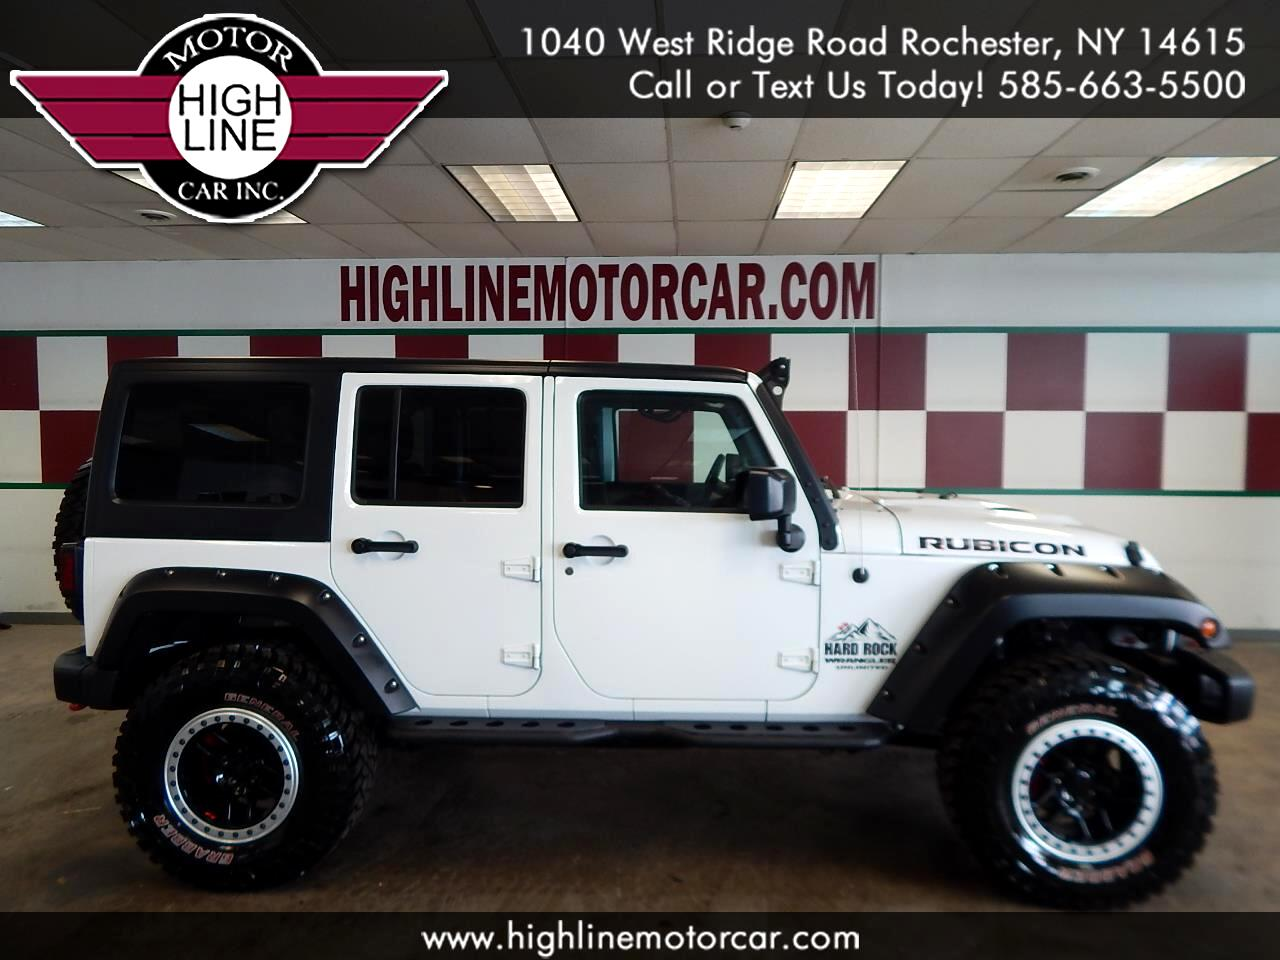 Jeep Wrangler Unlimited Rubicon Hard Rock 4x4 *Ltd Avail* 2017